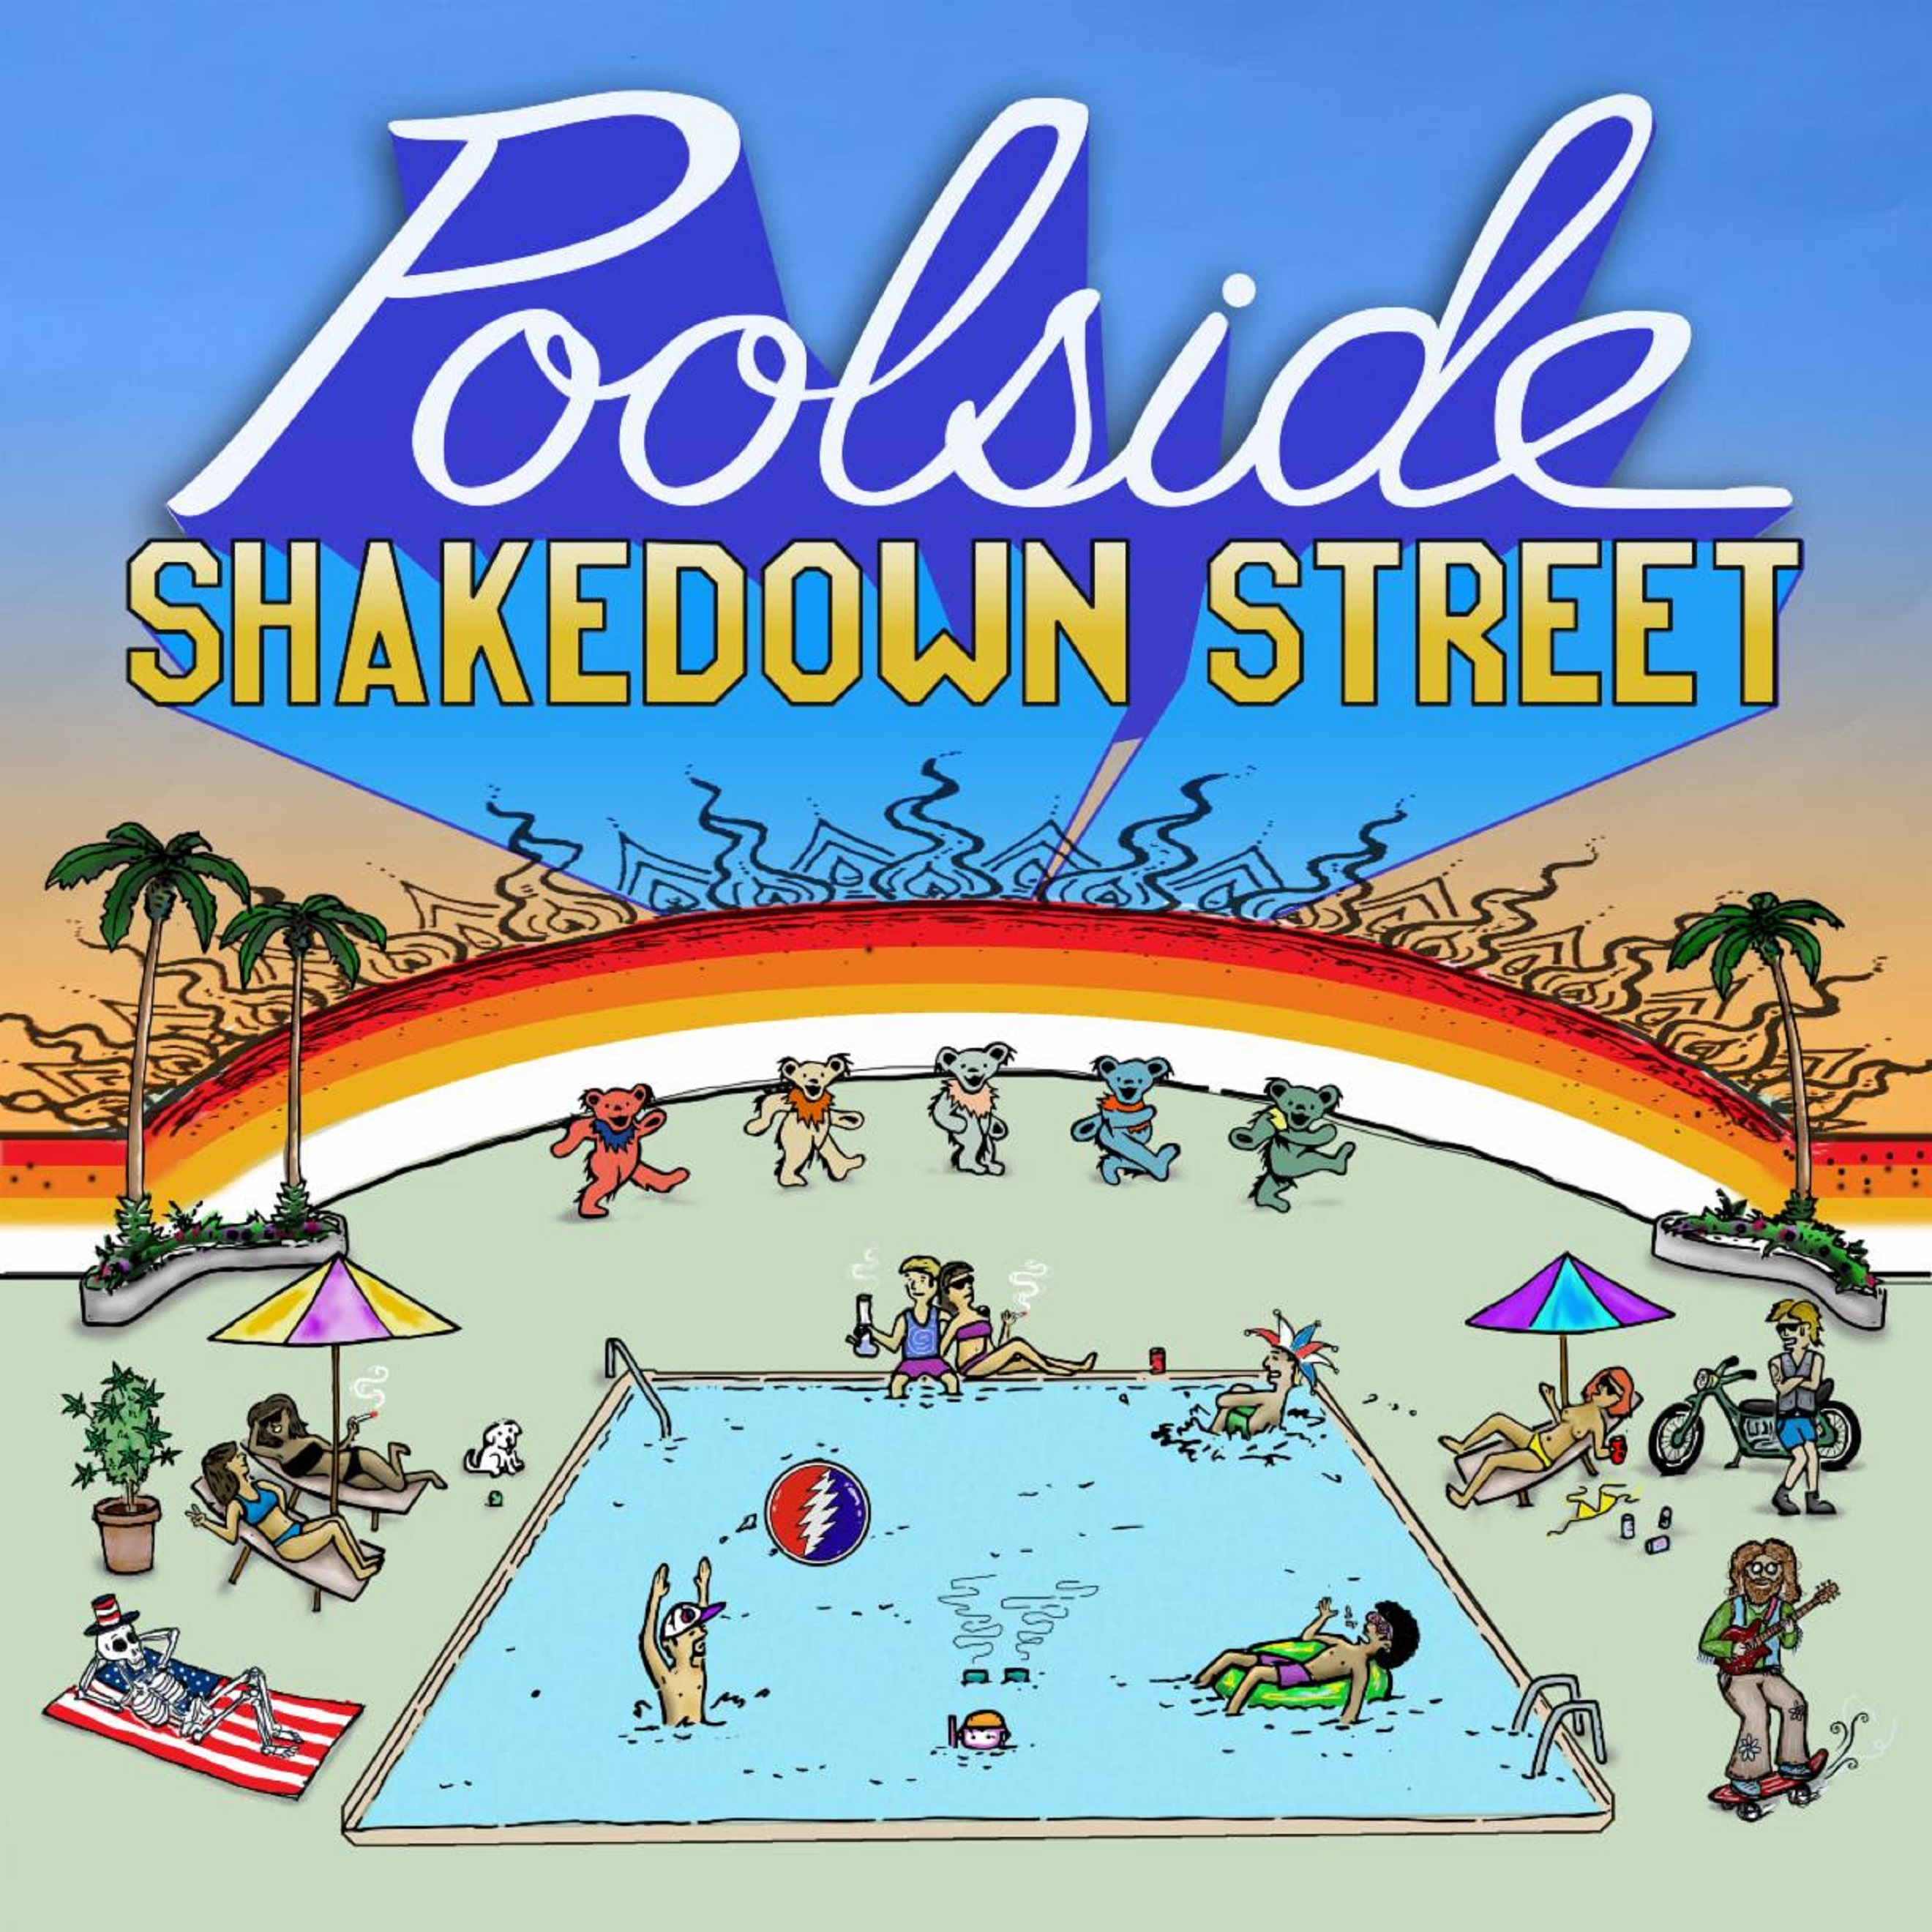 Poolside shares Shakedown Street for Jerry's Birthday